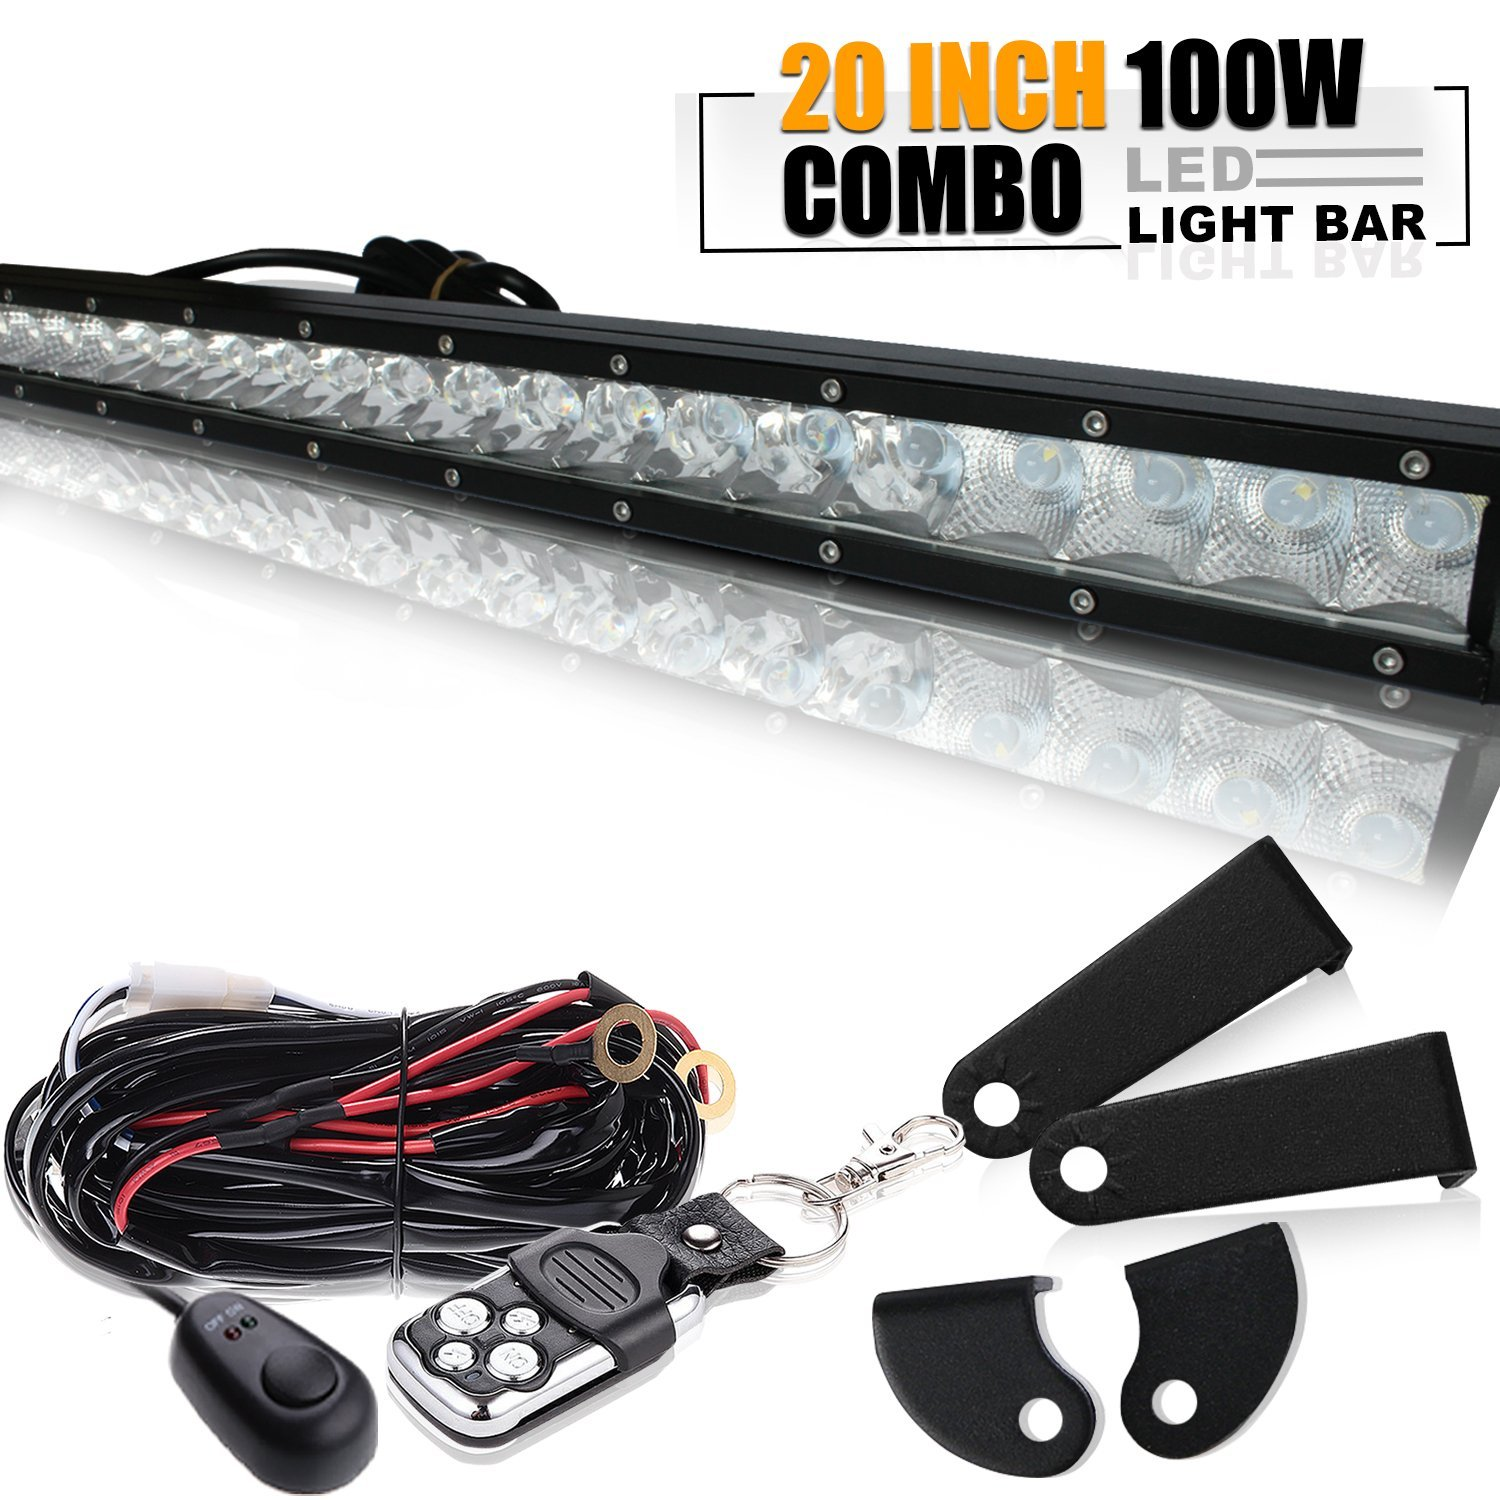 20 Inch Led Wire Diagram Wiring Diagrams Light Bar For With Harness Dodge 47 Fixture